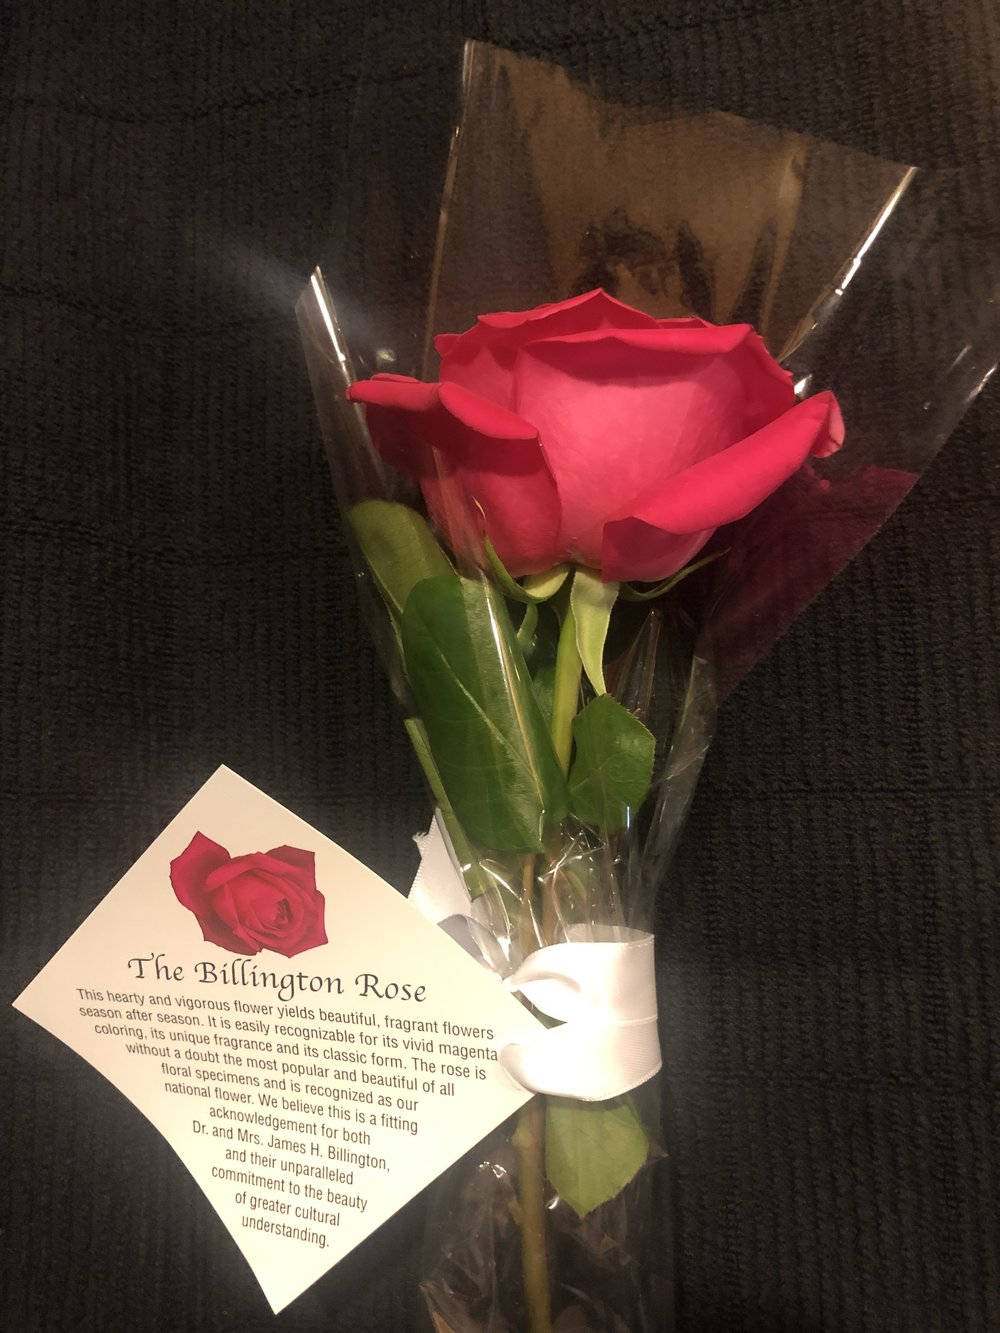 The Billington Rose I received as an audience member at the opening performance of WNO's  Eugene   Onegin . Photo by author.